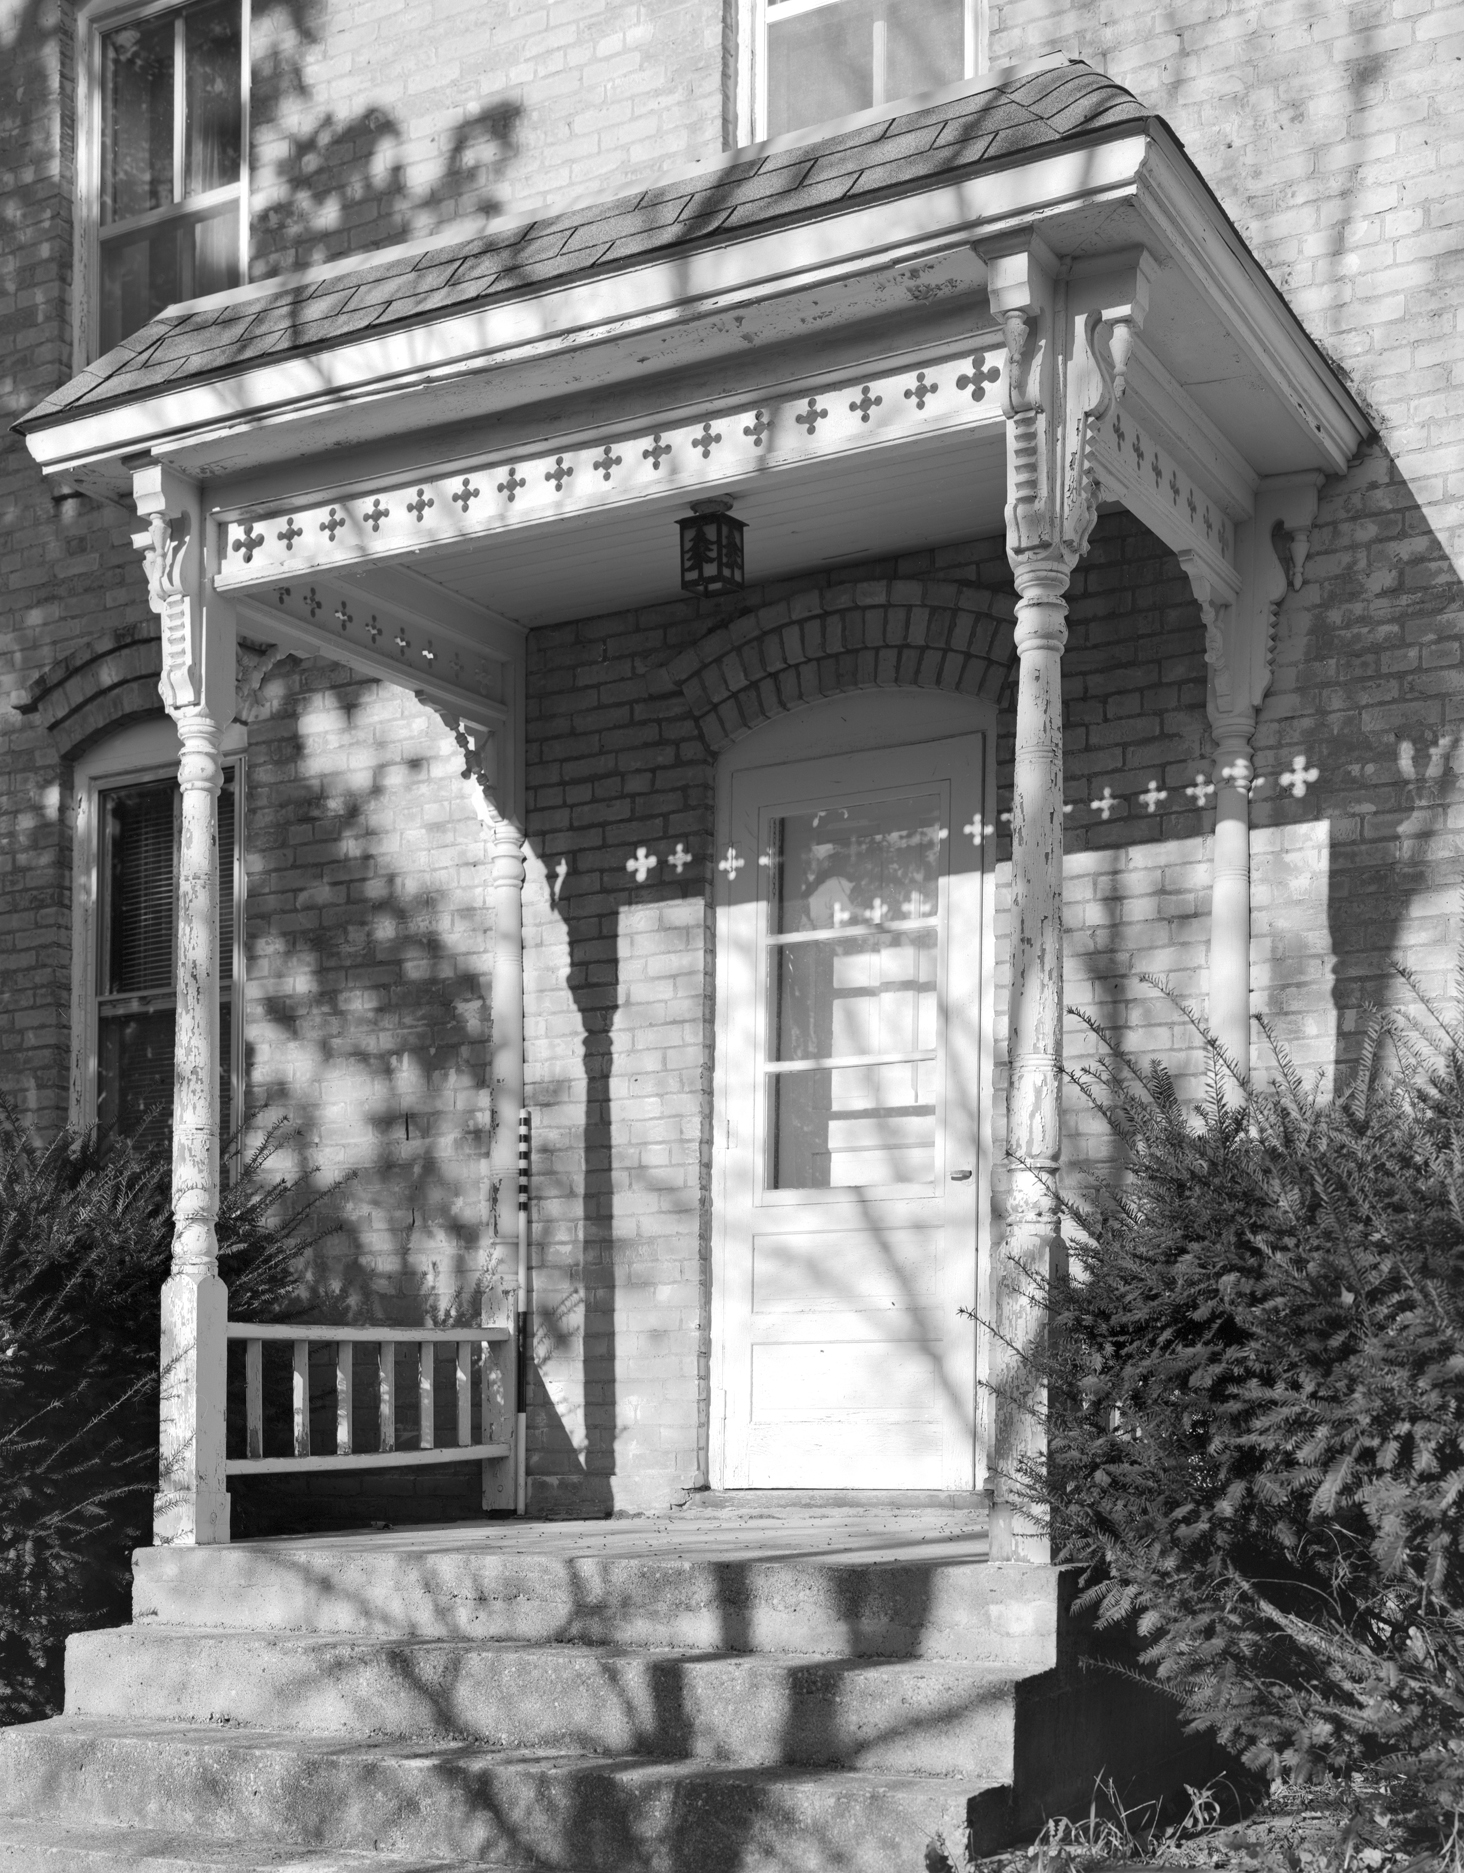 Ortlip House Porch Detail - MHPR CR-CKT-004-04 (Please credit Daniel R. Pratt and the Minnesota Historic Property Record)